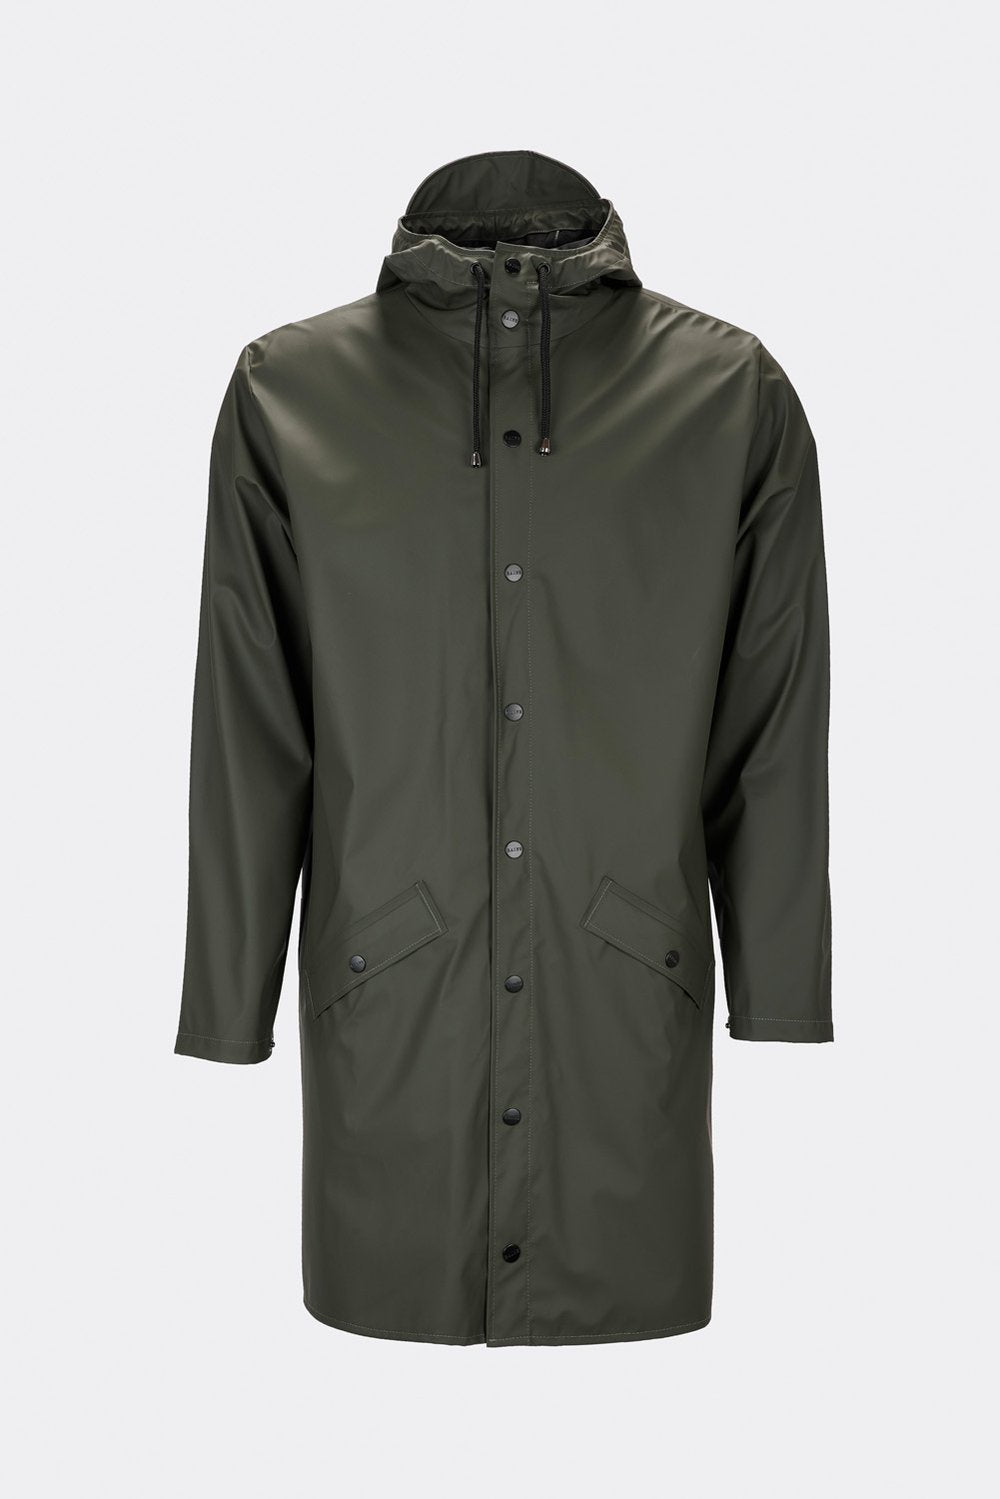 Rains - Long Jacket - Green